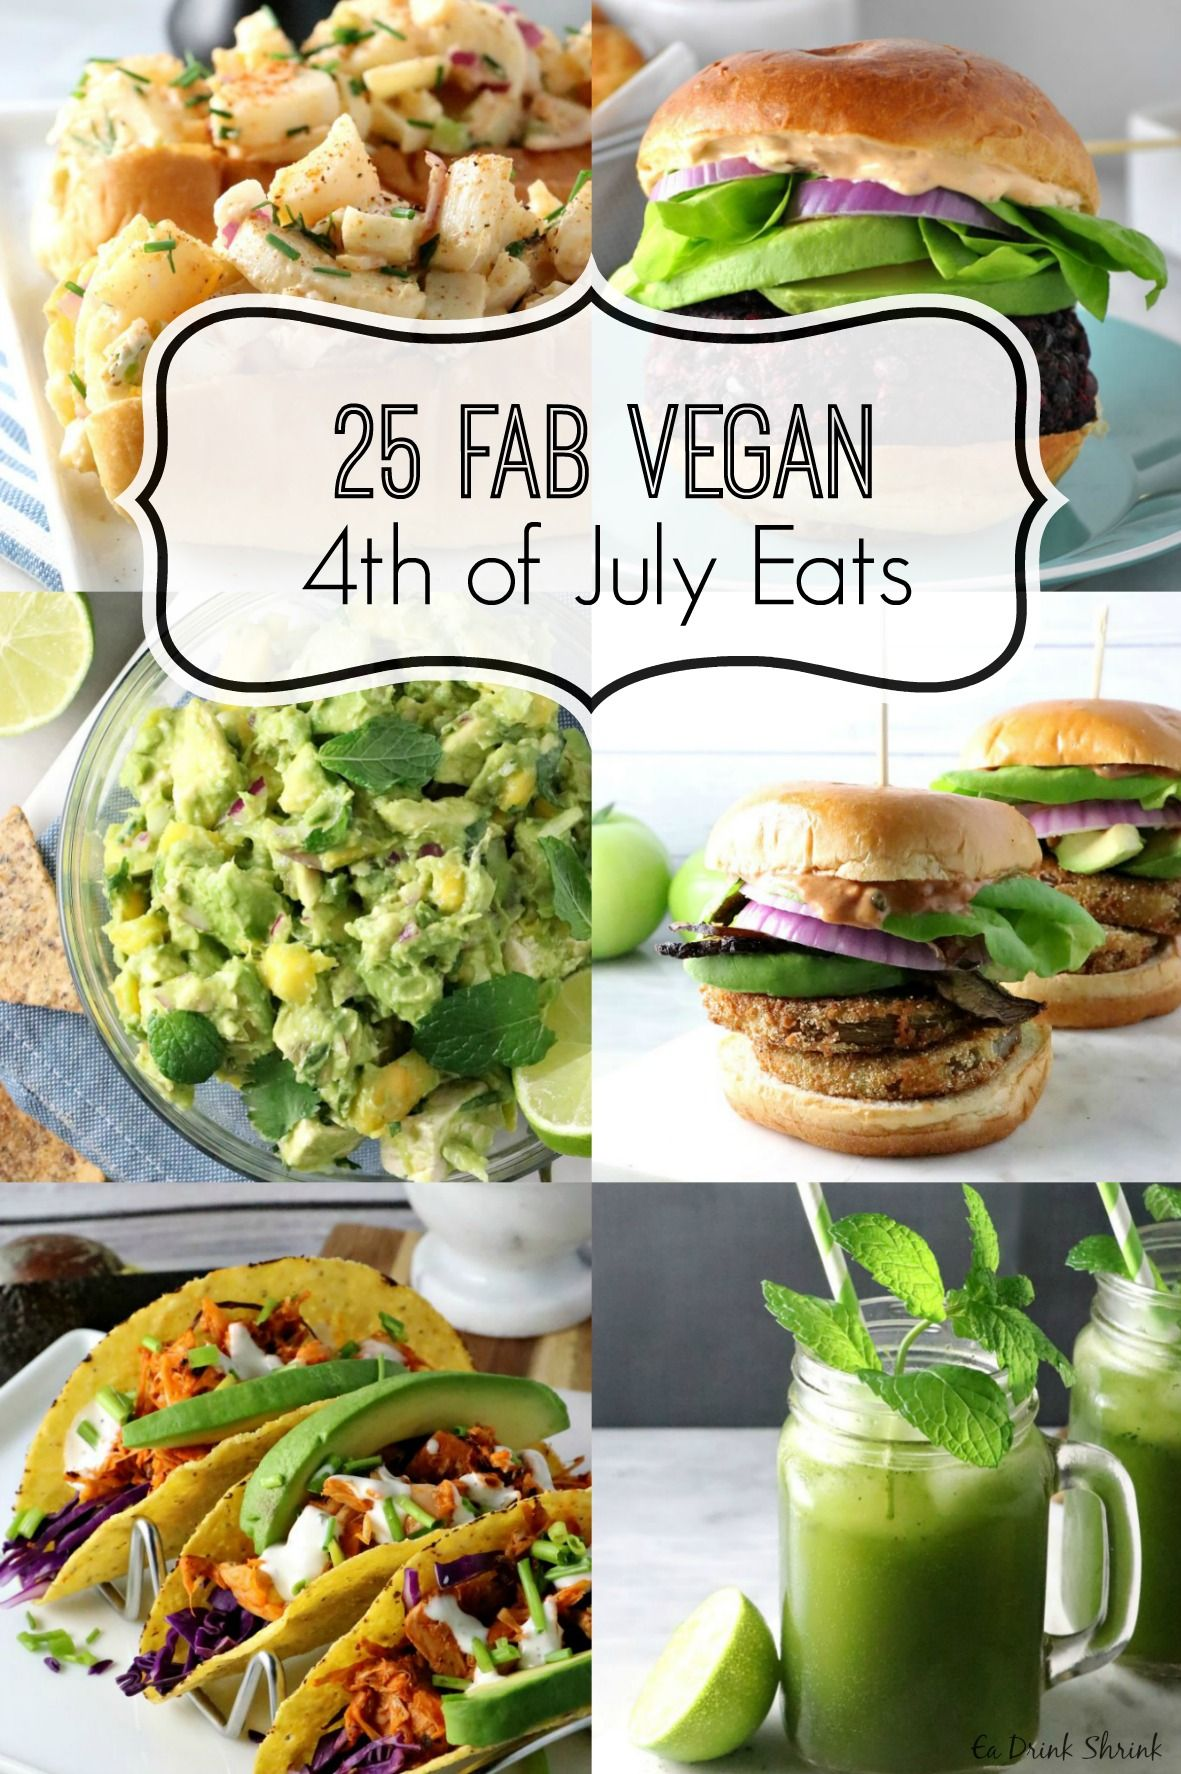 Top 25 Vegan 4th Of July Eats Vegan 2019 Vegan Recipes